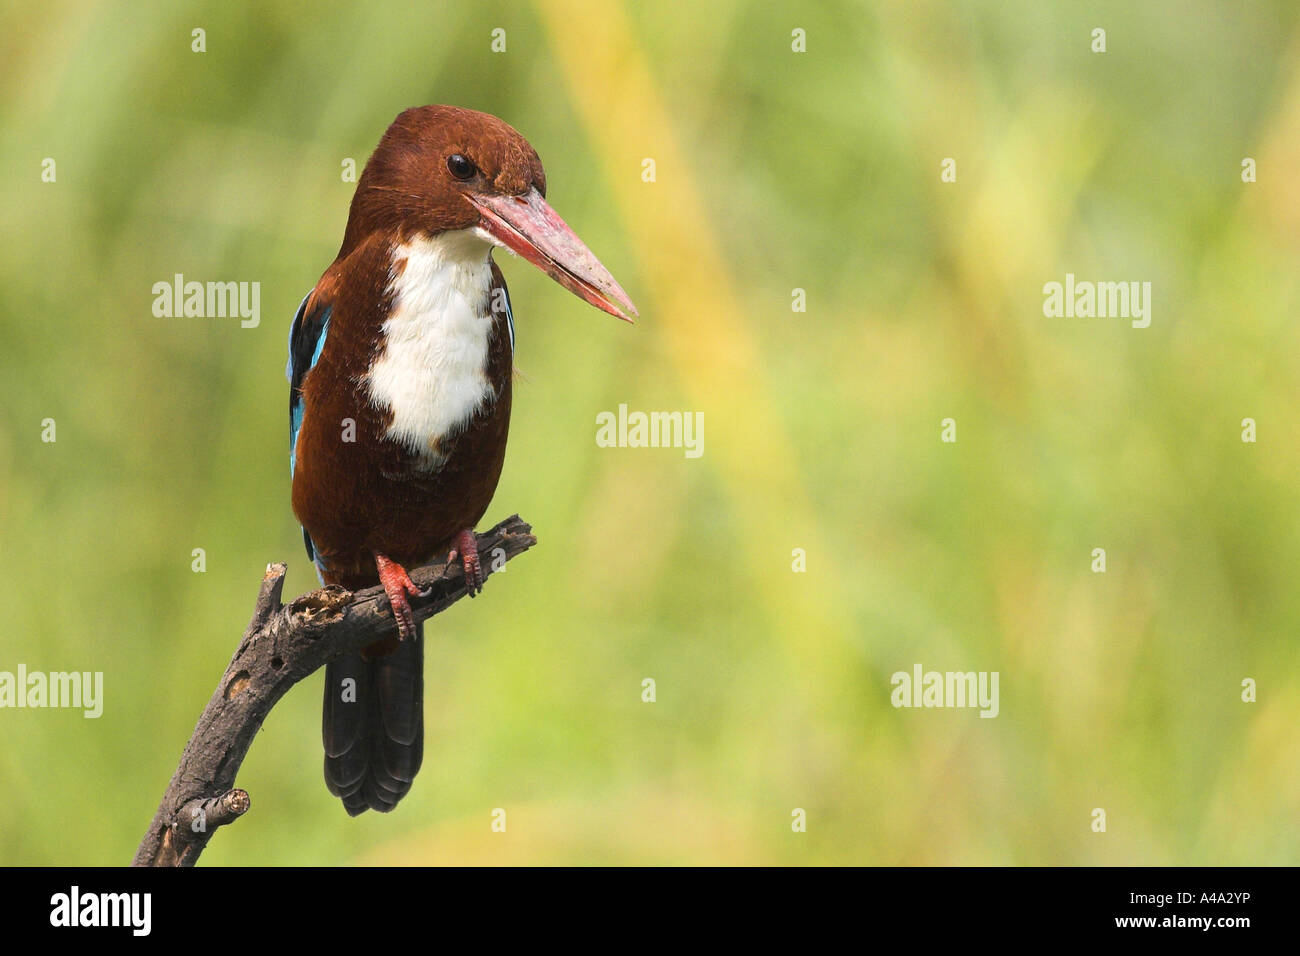 white-throated kingfisher, White-breasted Kingfisher, River Kingfisher (Halcyon smyrnensis), portrait, India, Keoladeo - Stock Image